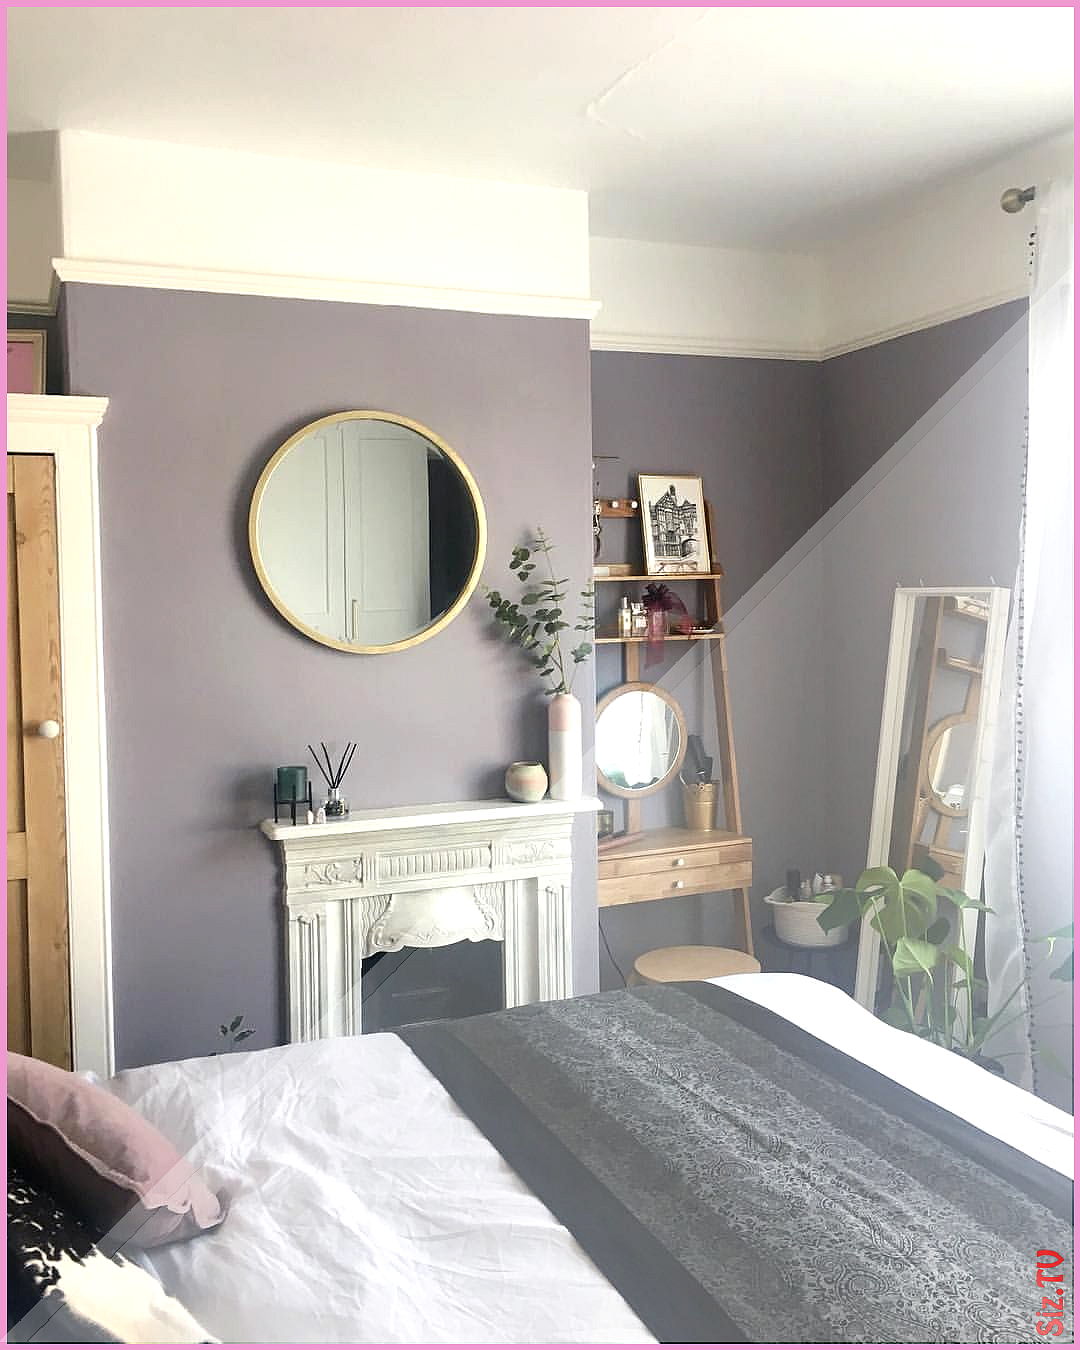 Paint Library Erica walls Laura Ashley mirror Lilac bedroom decor